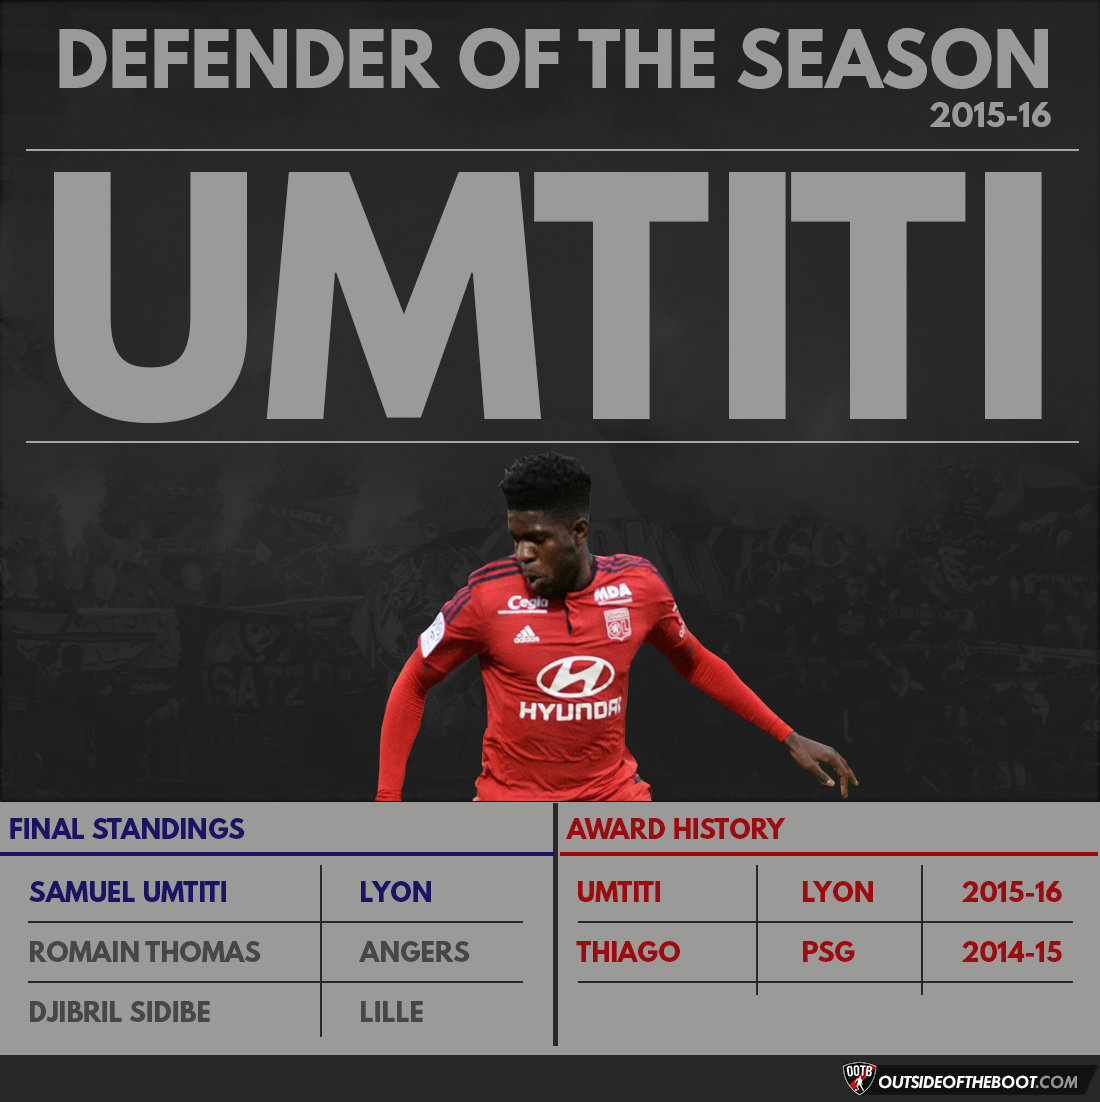 Ligue 1 Defender of the Season 2015-16